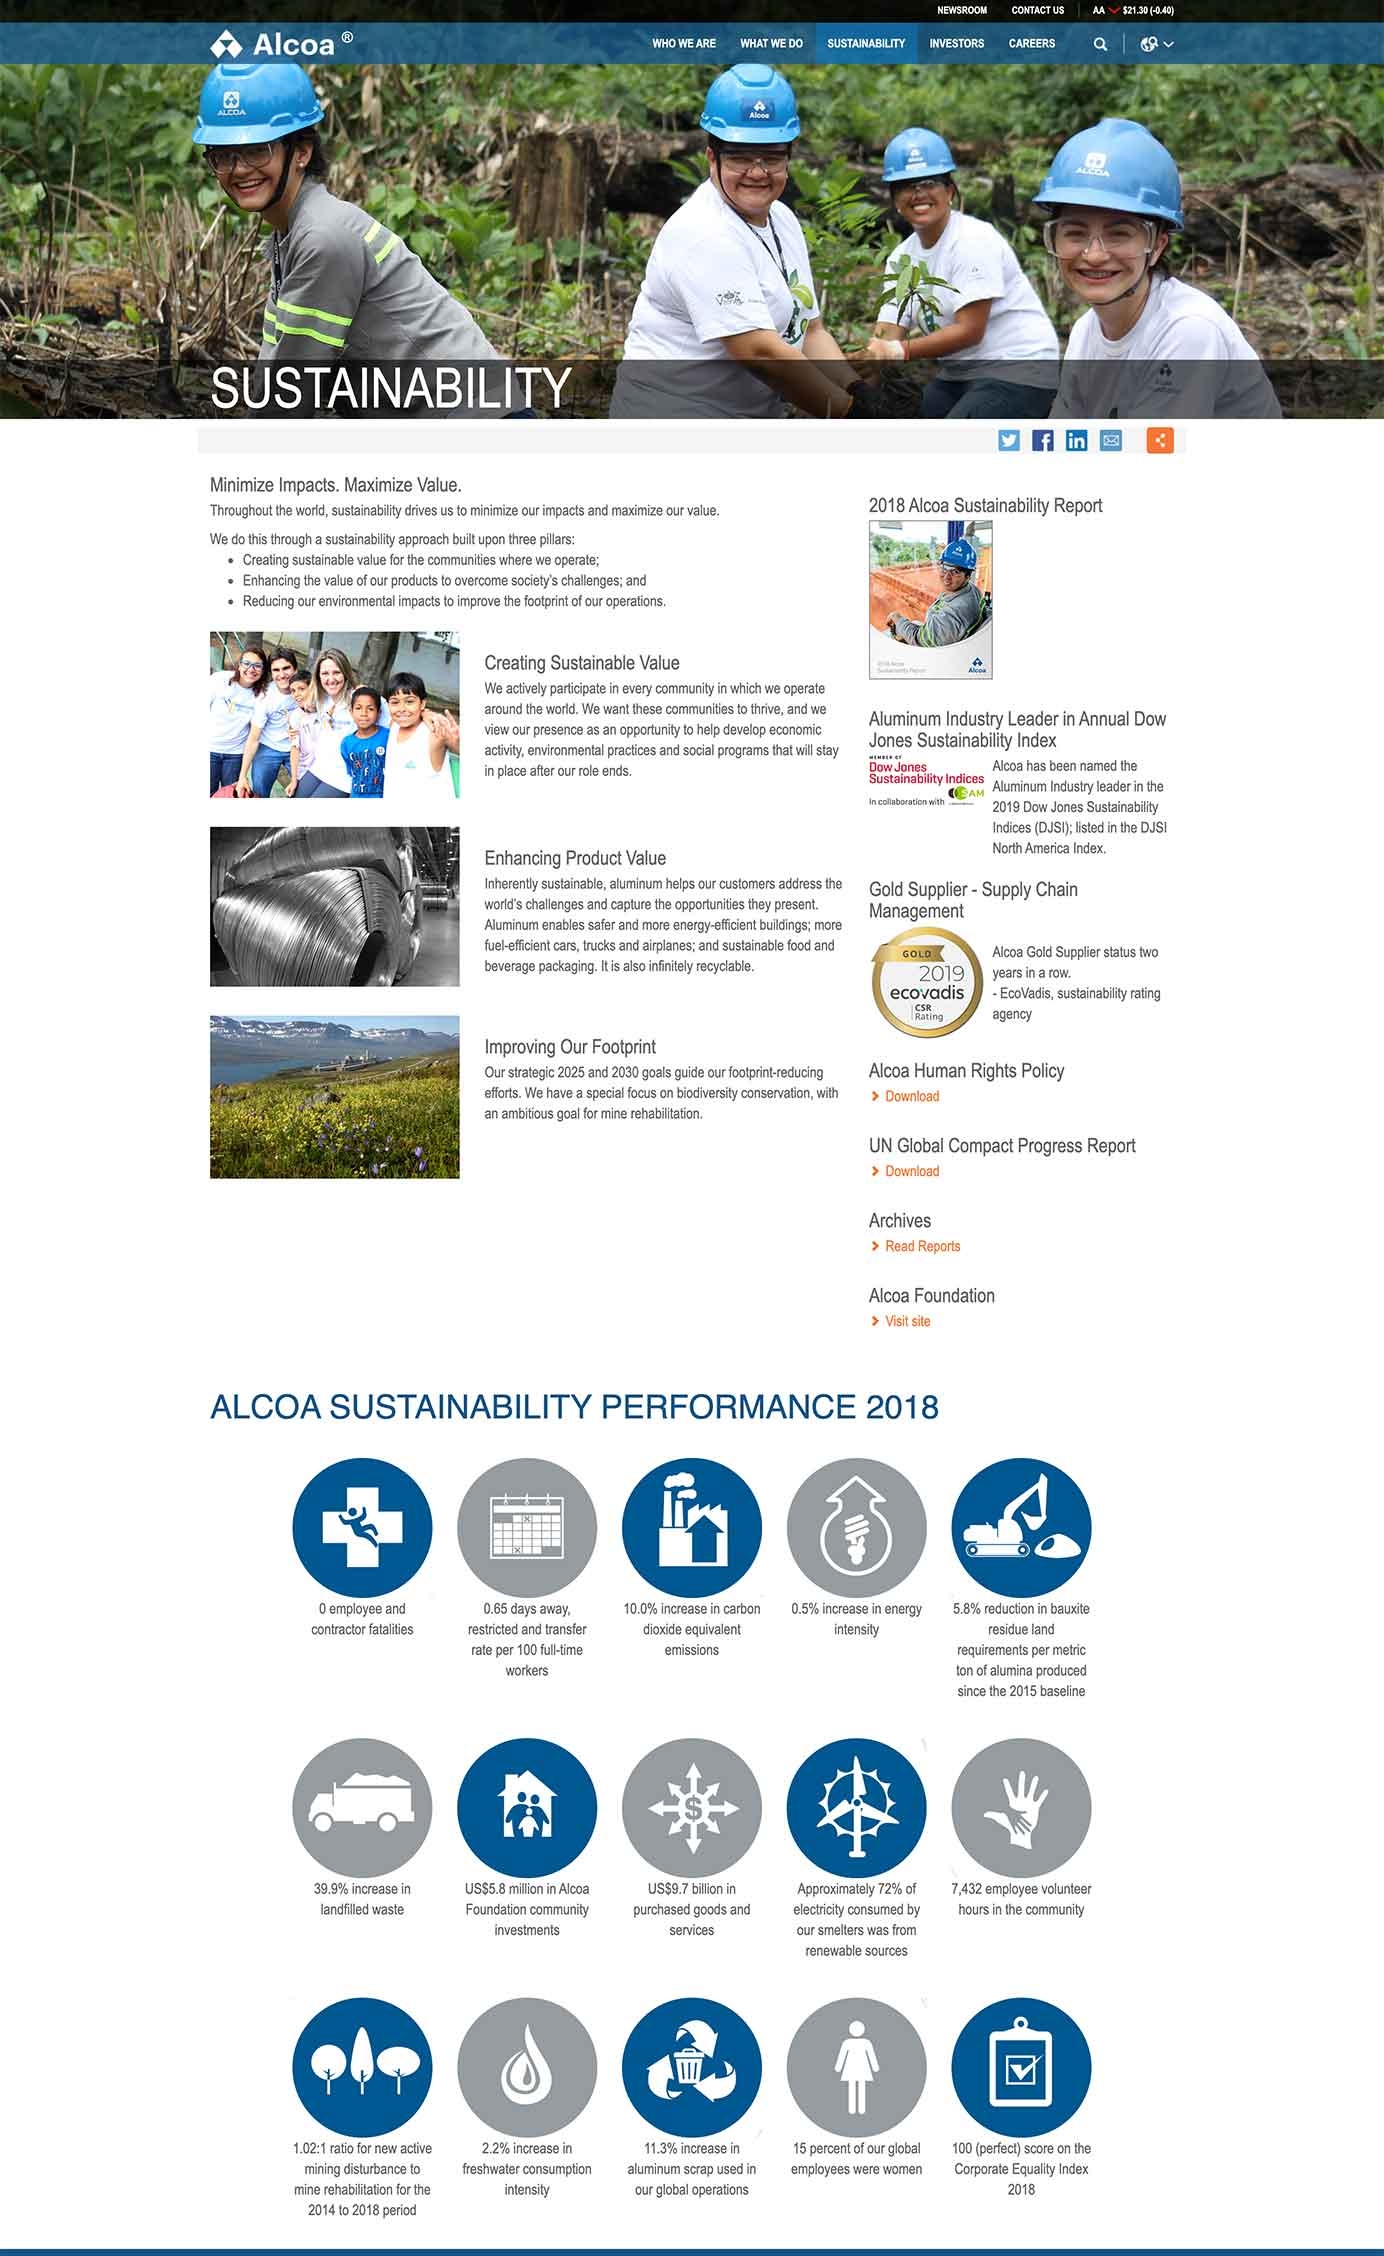 Aloca includes a detailed sustainability section on their website.